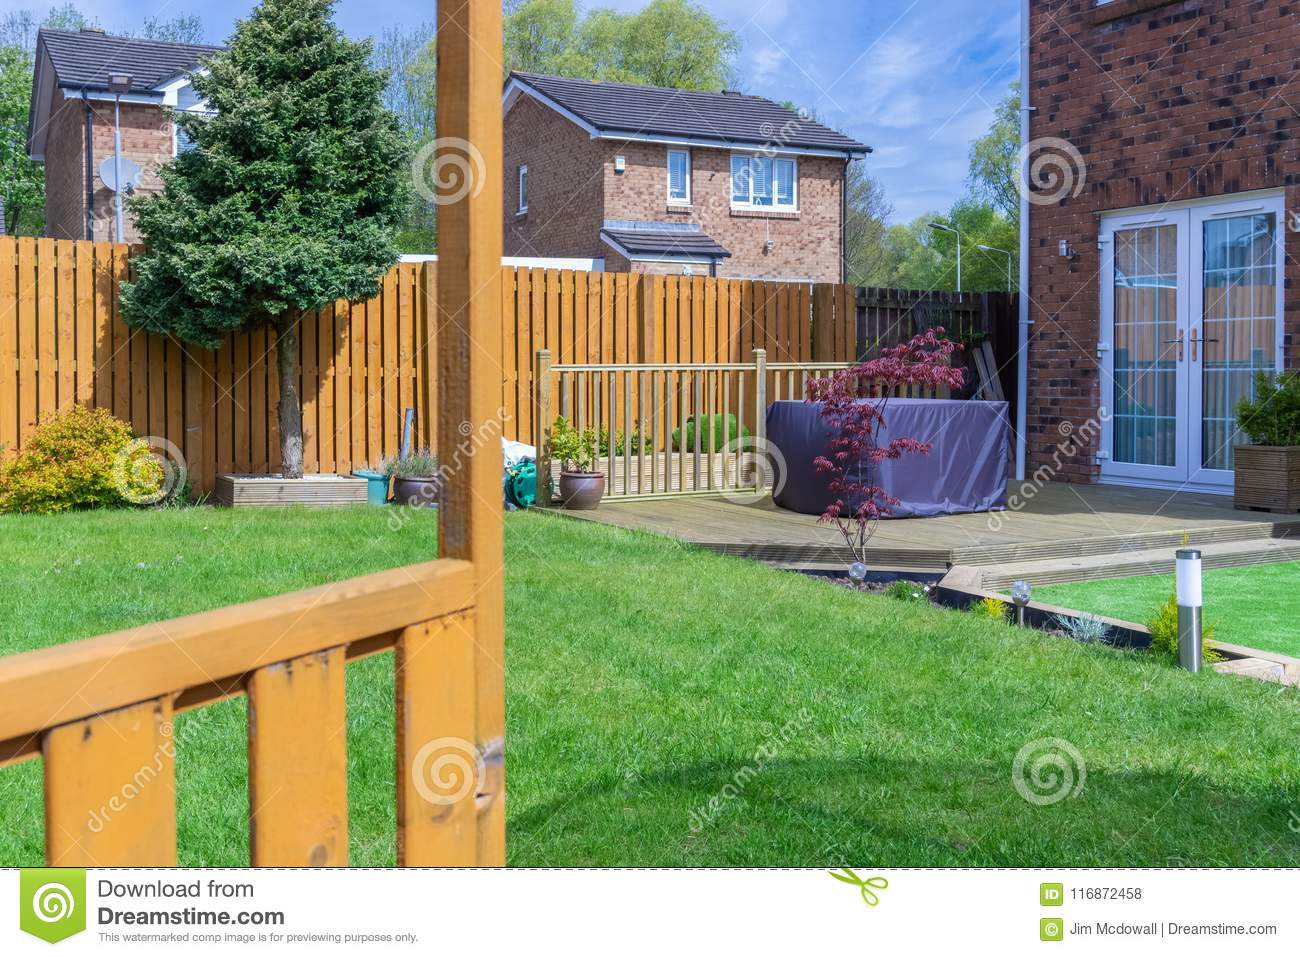 Modern Garden With A New Planted Lawn Stock Photo Image Of Border Borders 116872458